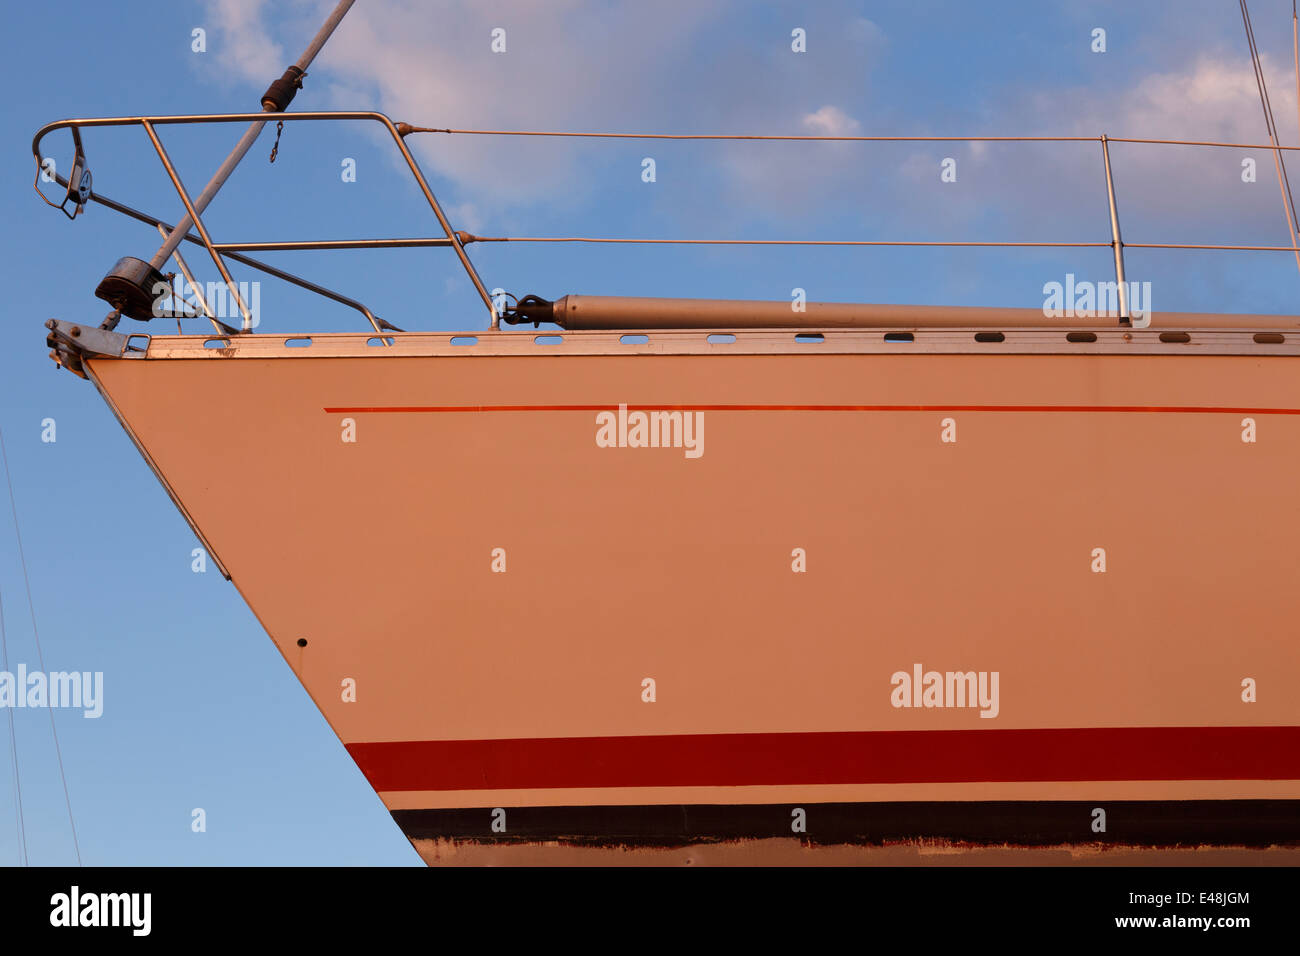 Yacht out of water, just been repainted orange. Stock Photo